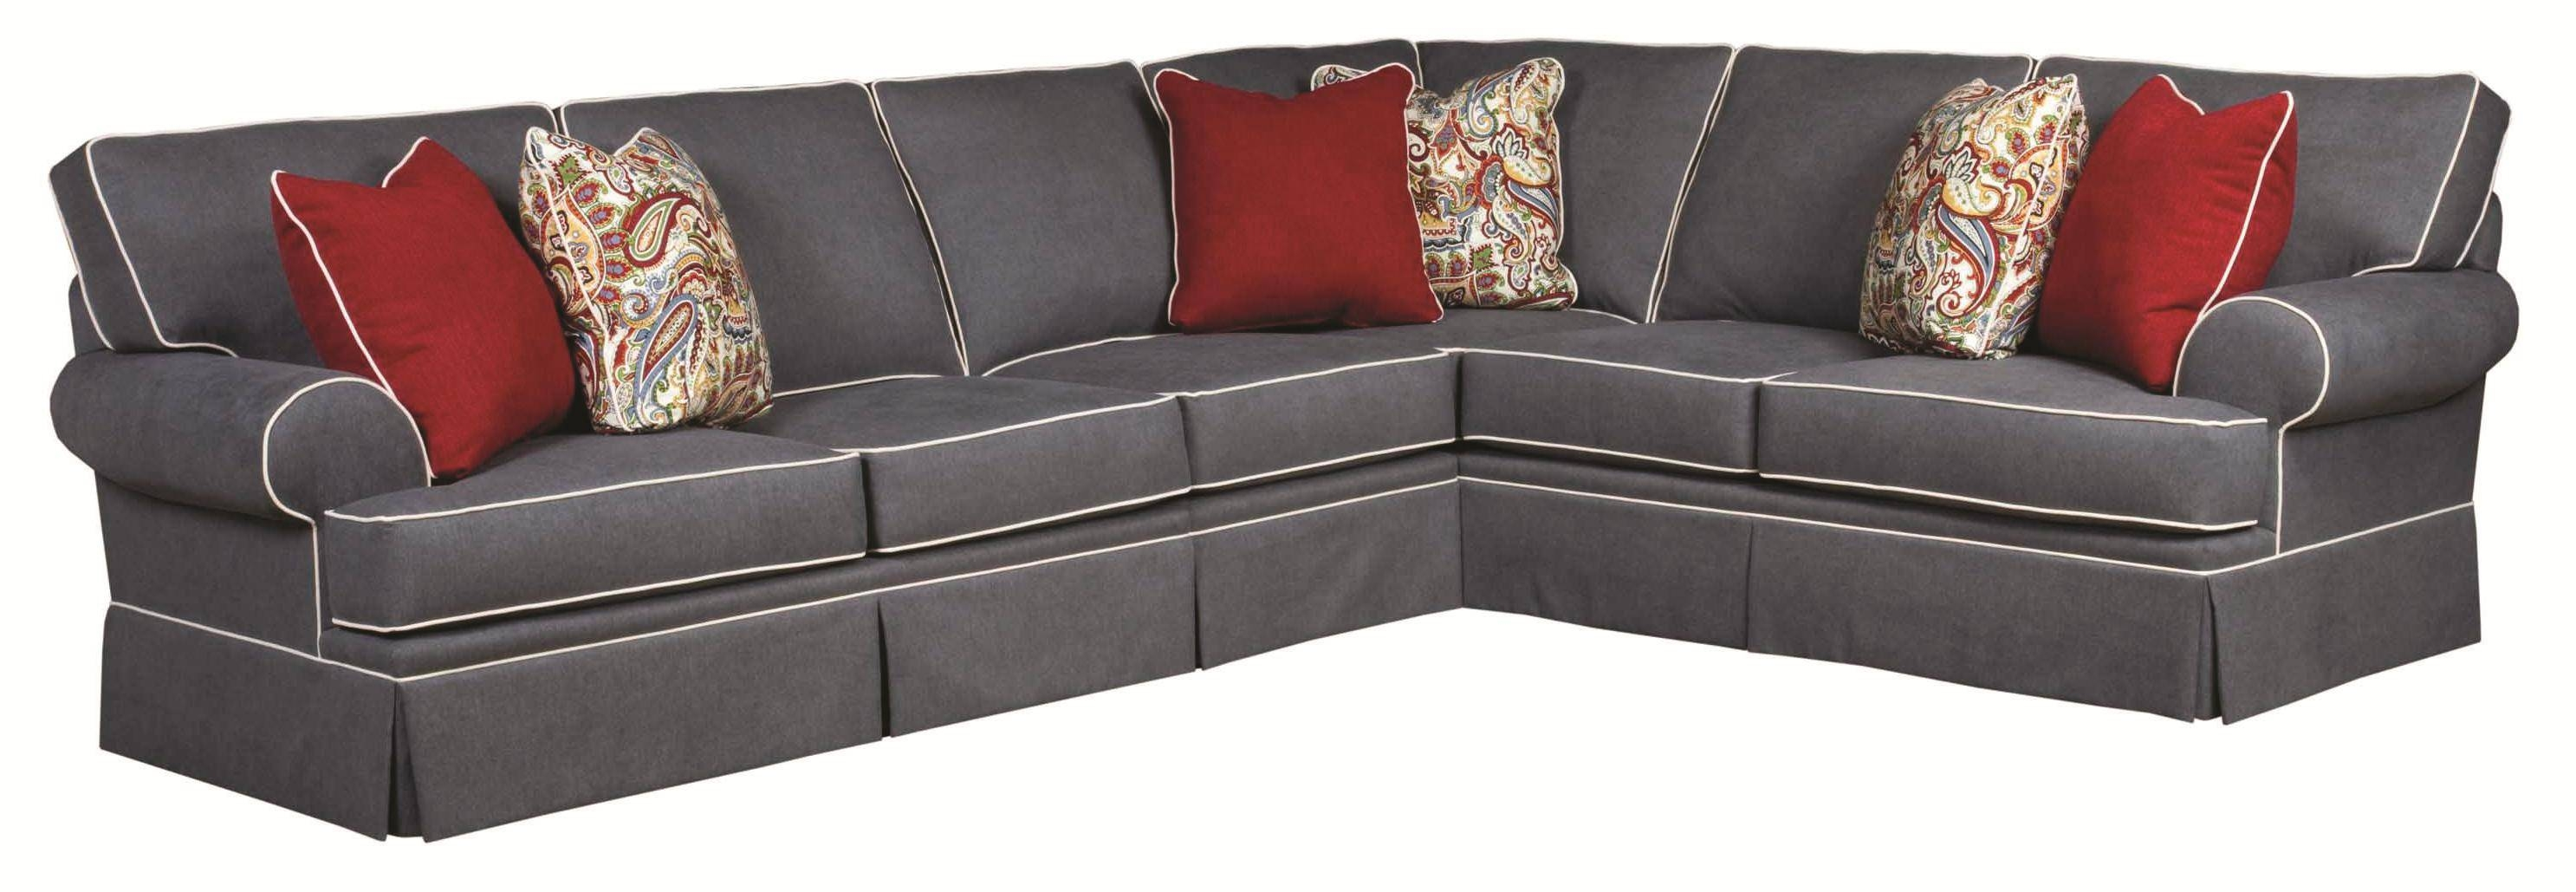 Broyhill Furniture Emily Traditional 3 Piece Sectional Sofa With within Emily Sofas (Image 5 of 15)